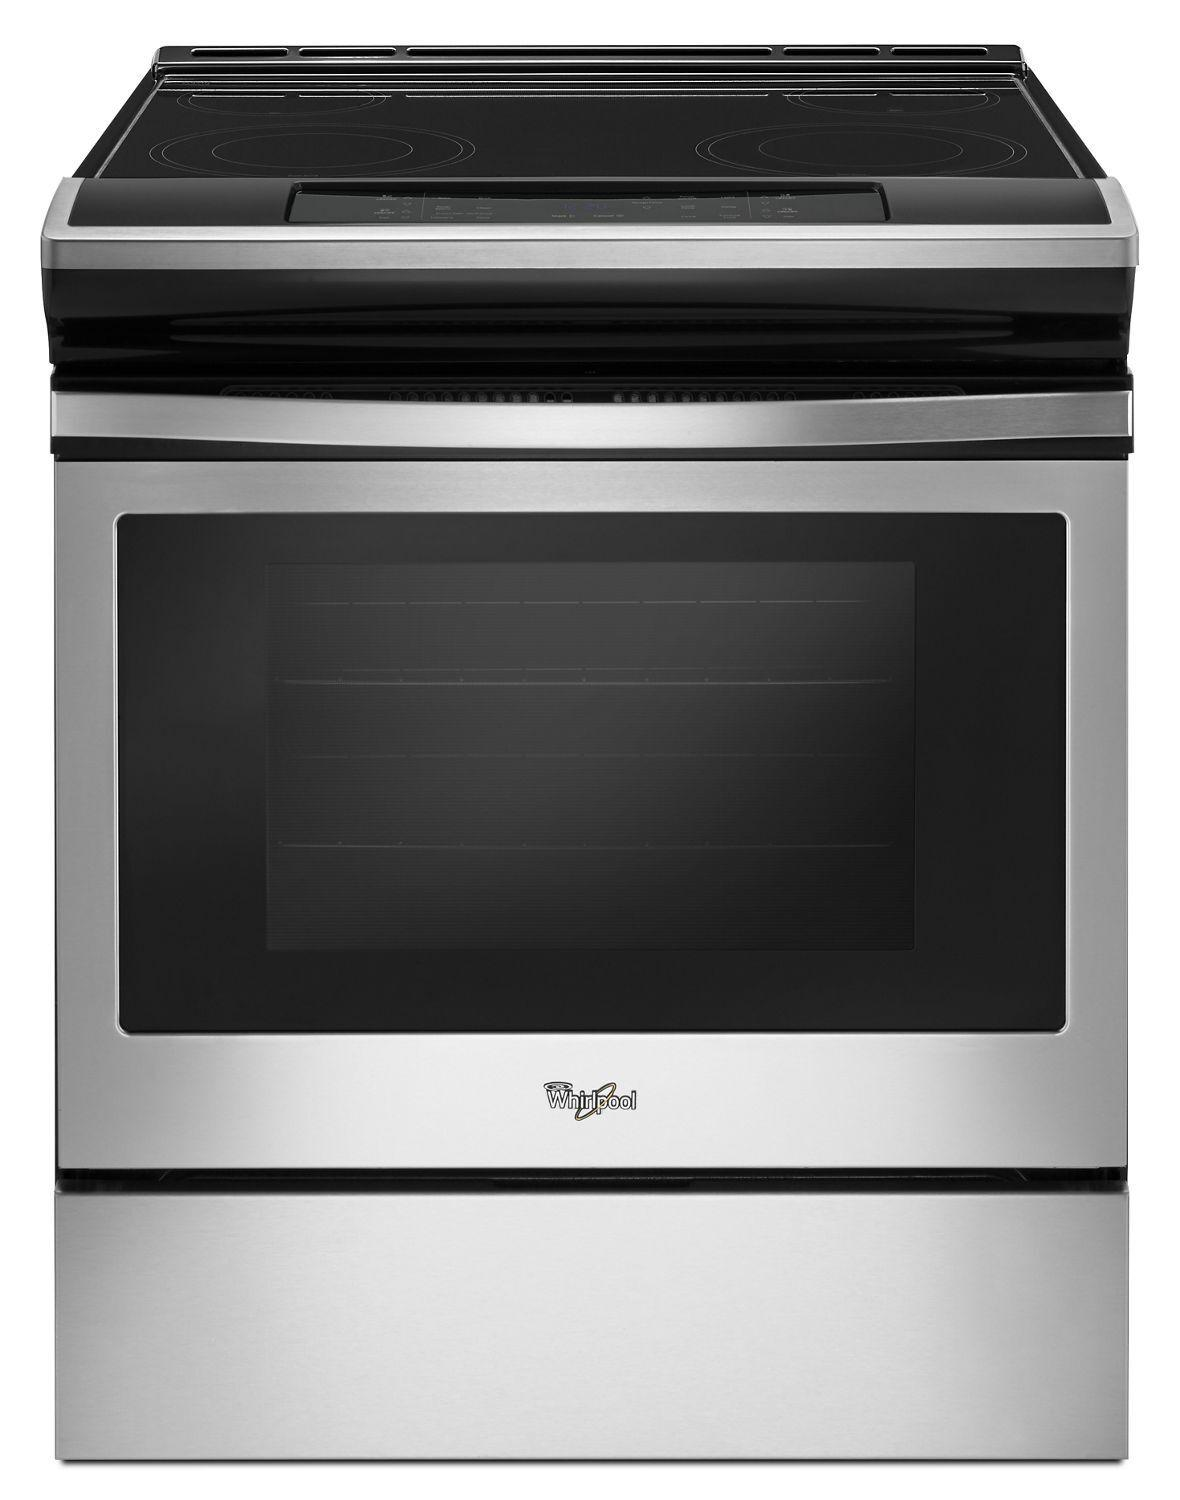 Whirlpool4.8 Cu. Ft. Guided Electric Front Control Range With The Easy-Wipe Ceramic Glass Cooktop Black-On-Stainless